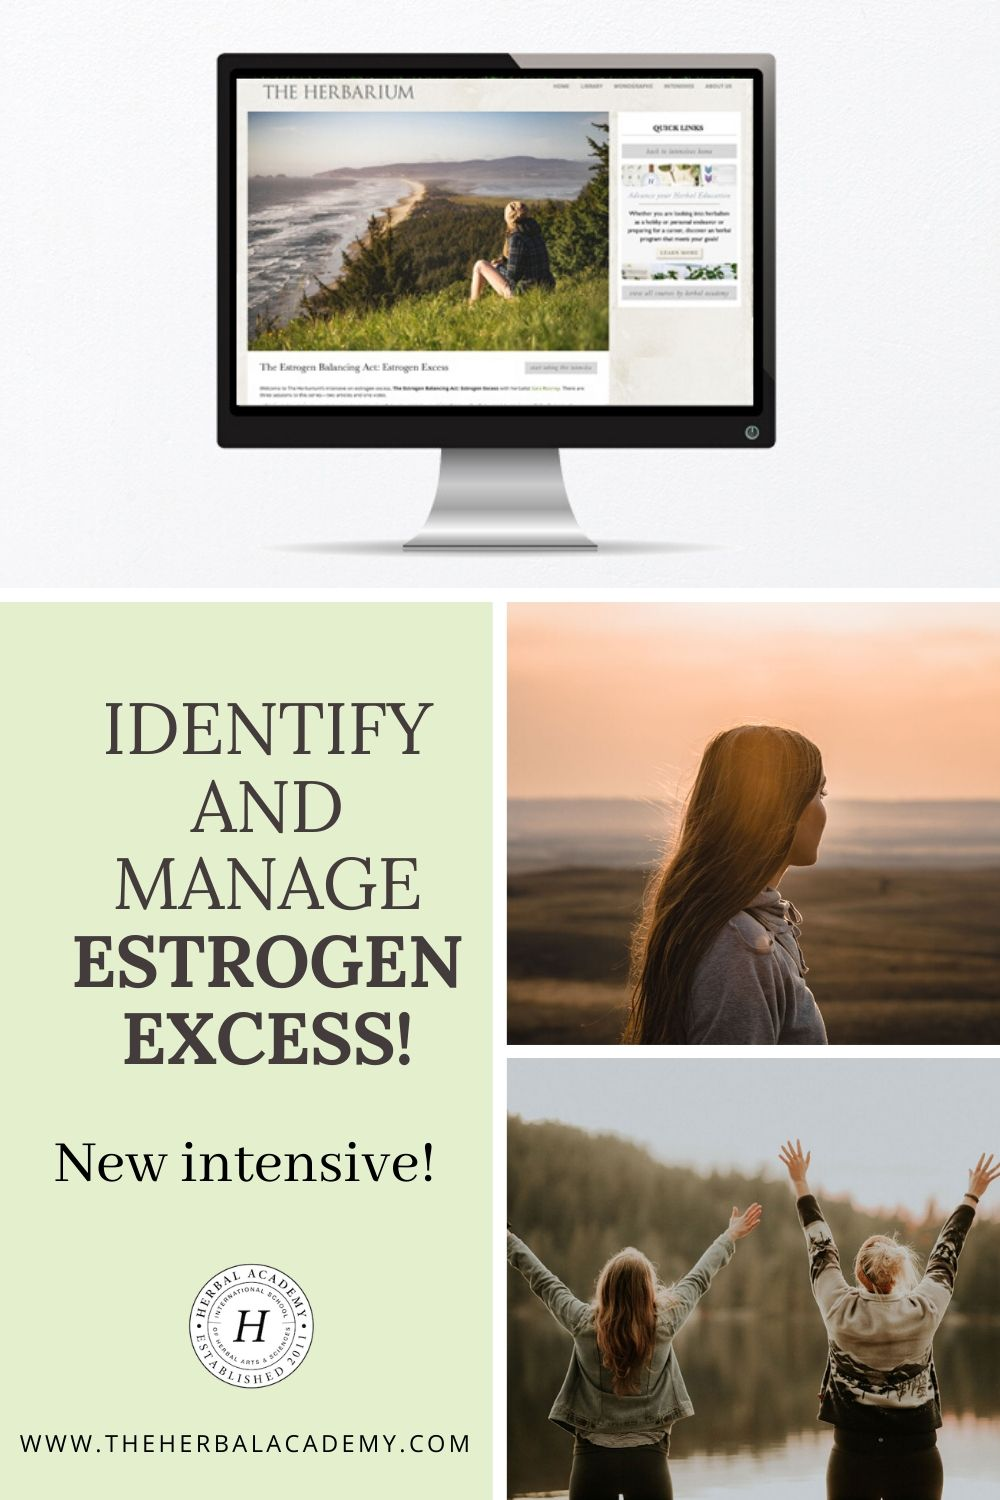 New Intensive! Identify and Manage Estrogen Excess   Herbal Academy   We've partnered with Sara Rooney, a medical herbalist specializing in hormonal imbalance, to release our newest Herbarium intensive about estrogen excess.